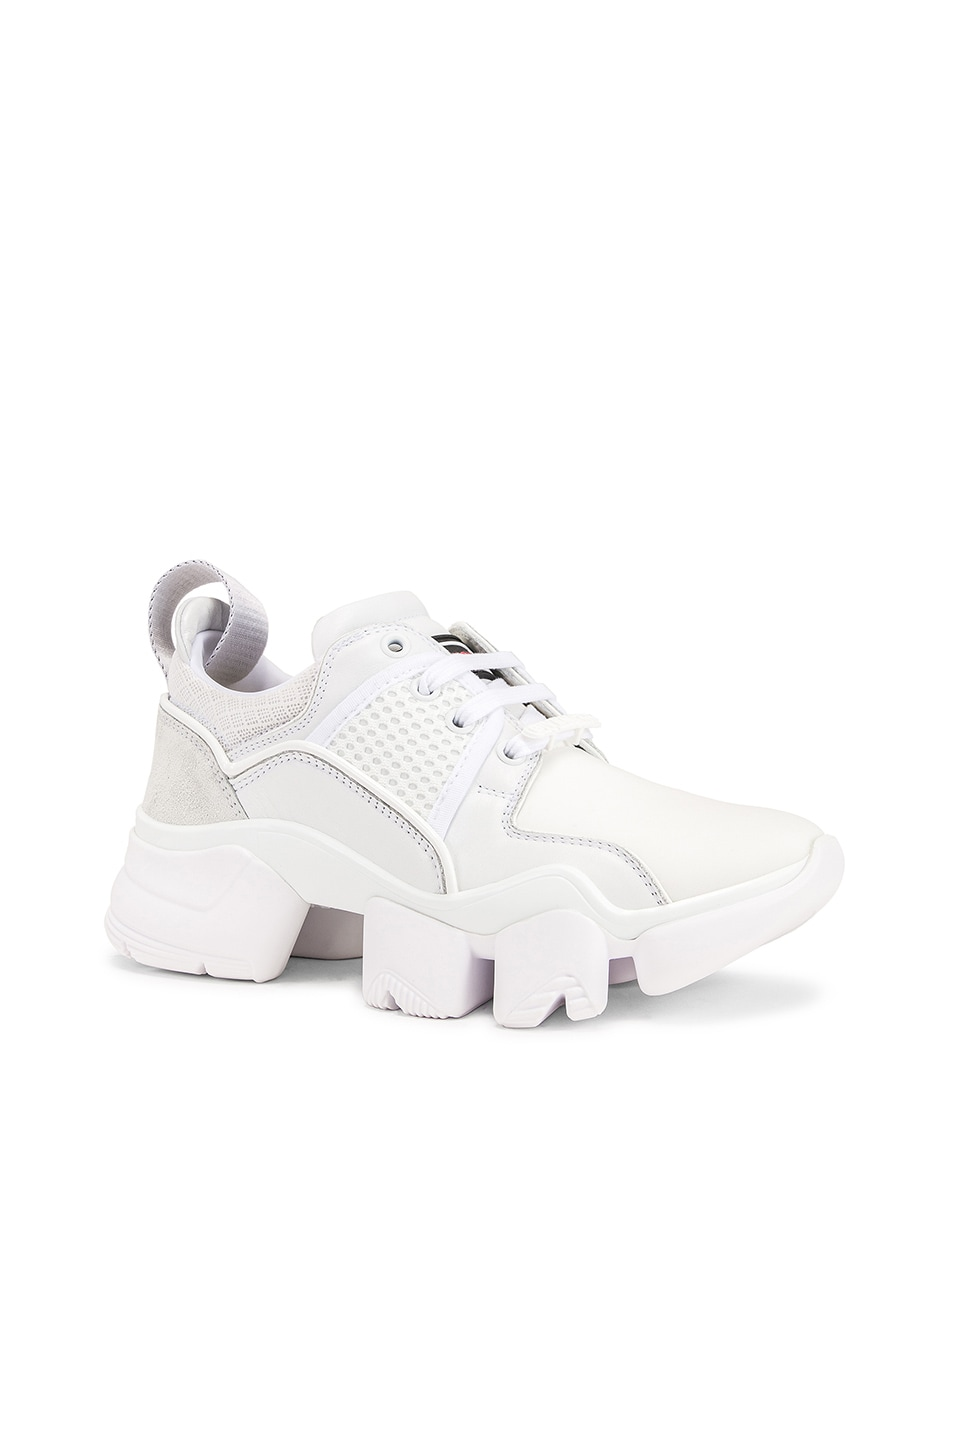 Image 2 of Givenchy Jaw Low Sneakers in White